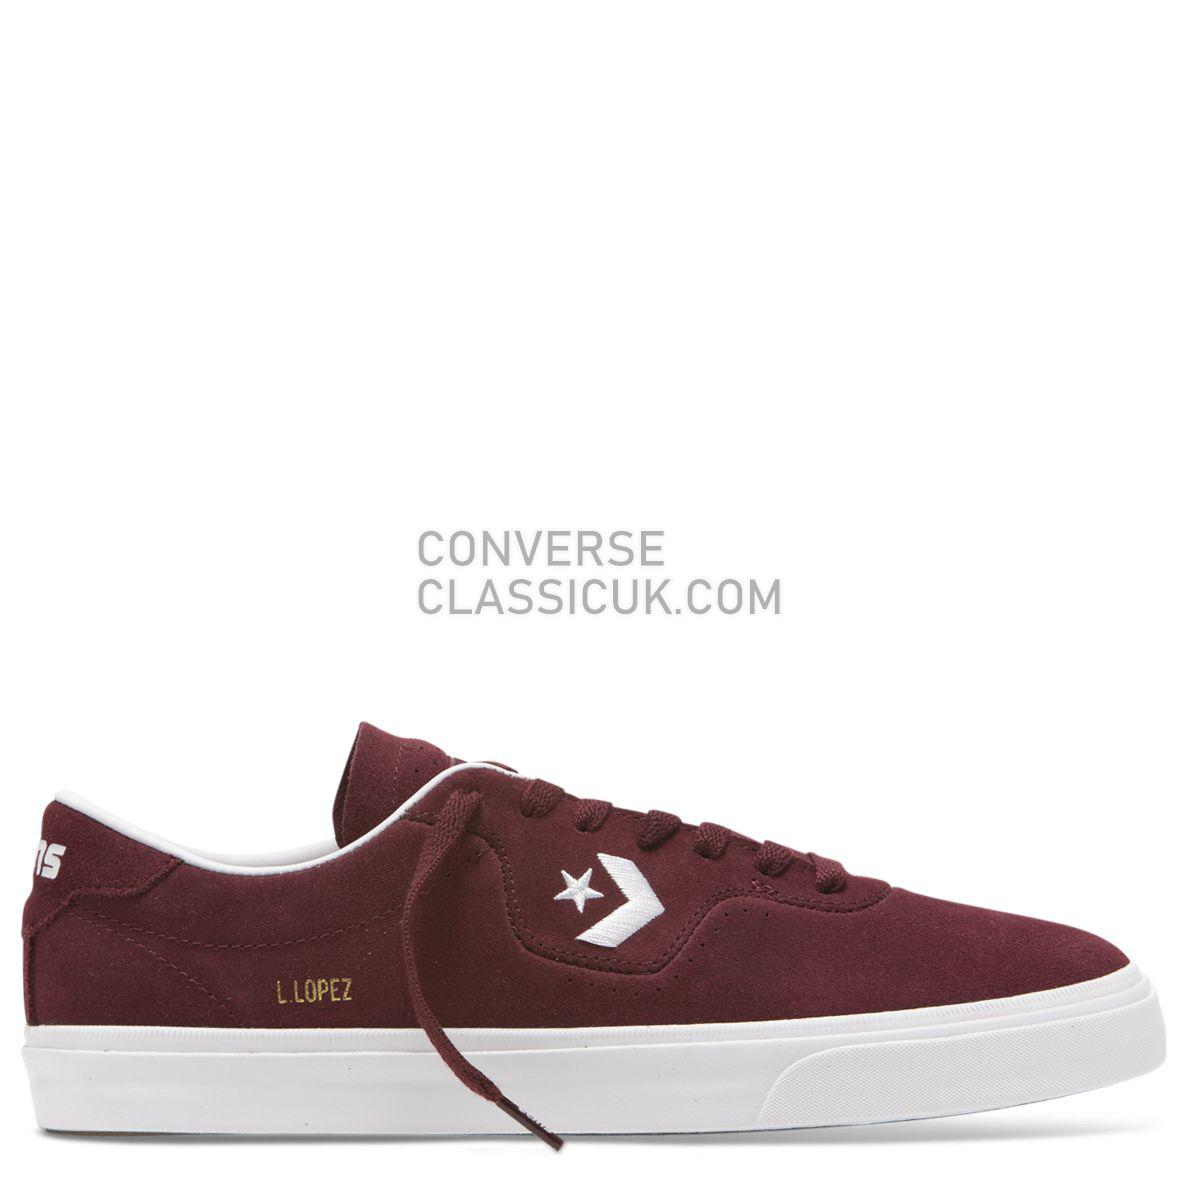 Converse CONS Louie Lopez Pro Classic Suede Low Top Dark Burgundy Mens 165272 Dark Burgundy/White/Gum Shoes